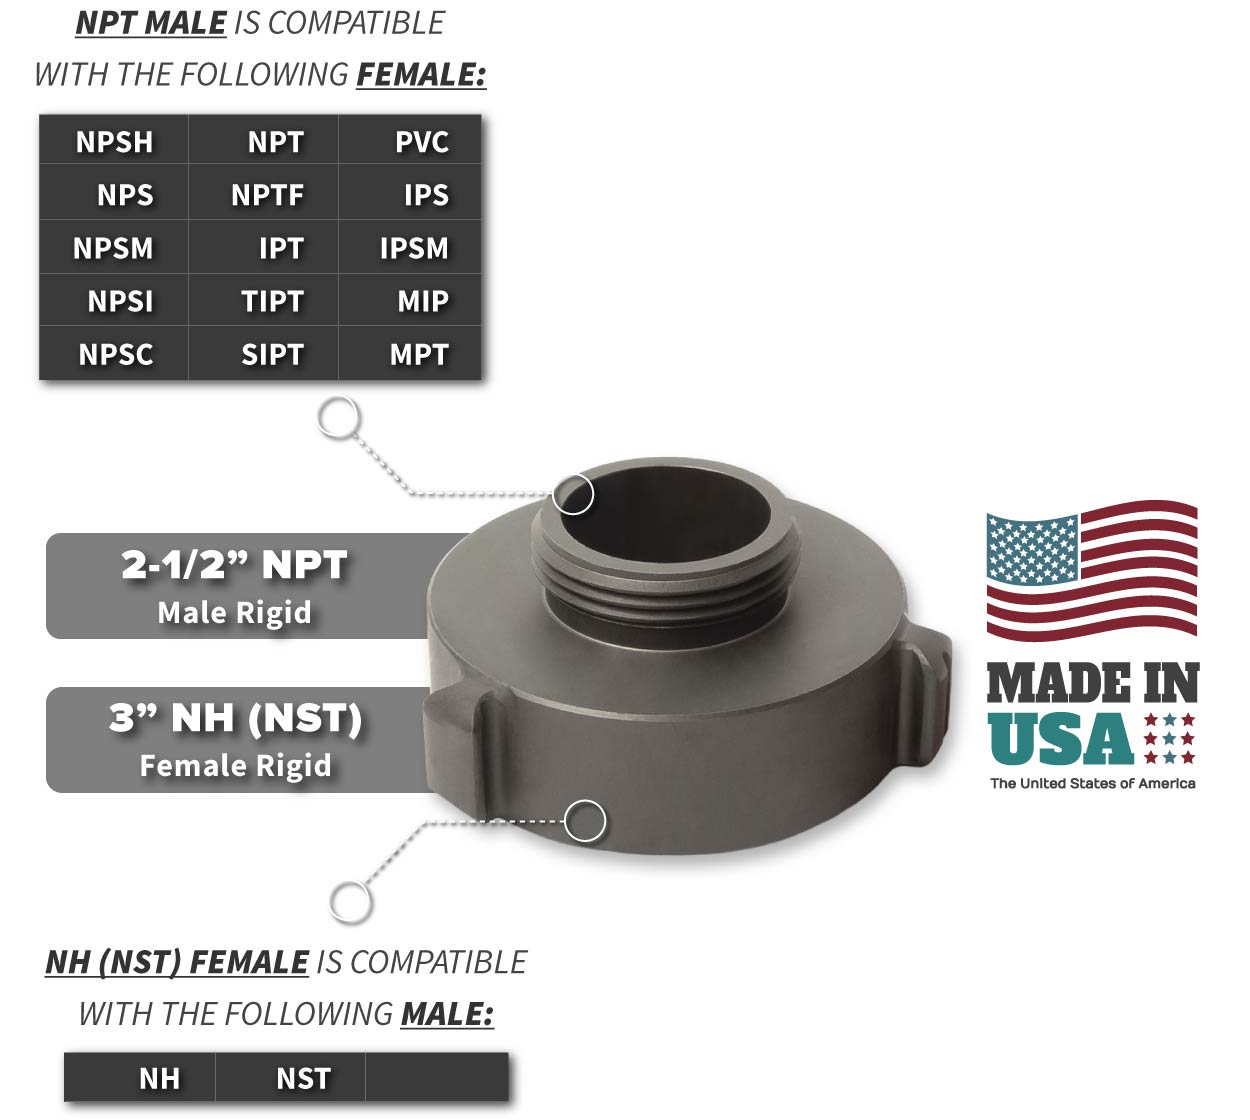 3 Inch NH-NST Female x 2.5 Inch NPT Male Compatibility Thread Chart